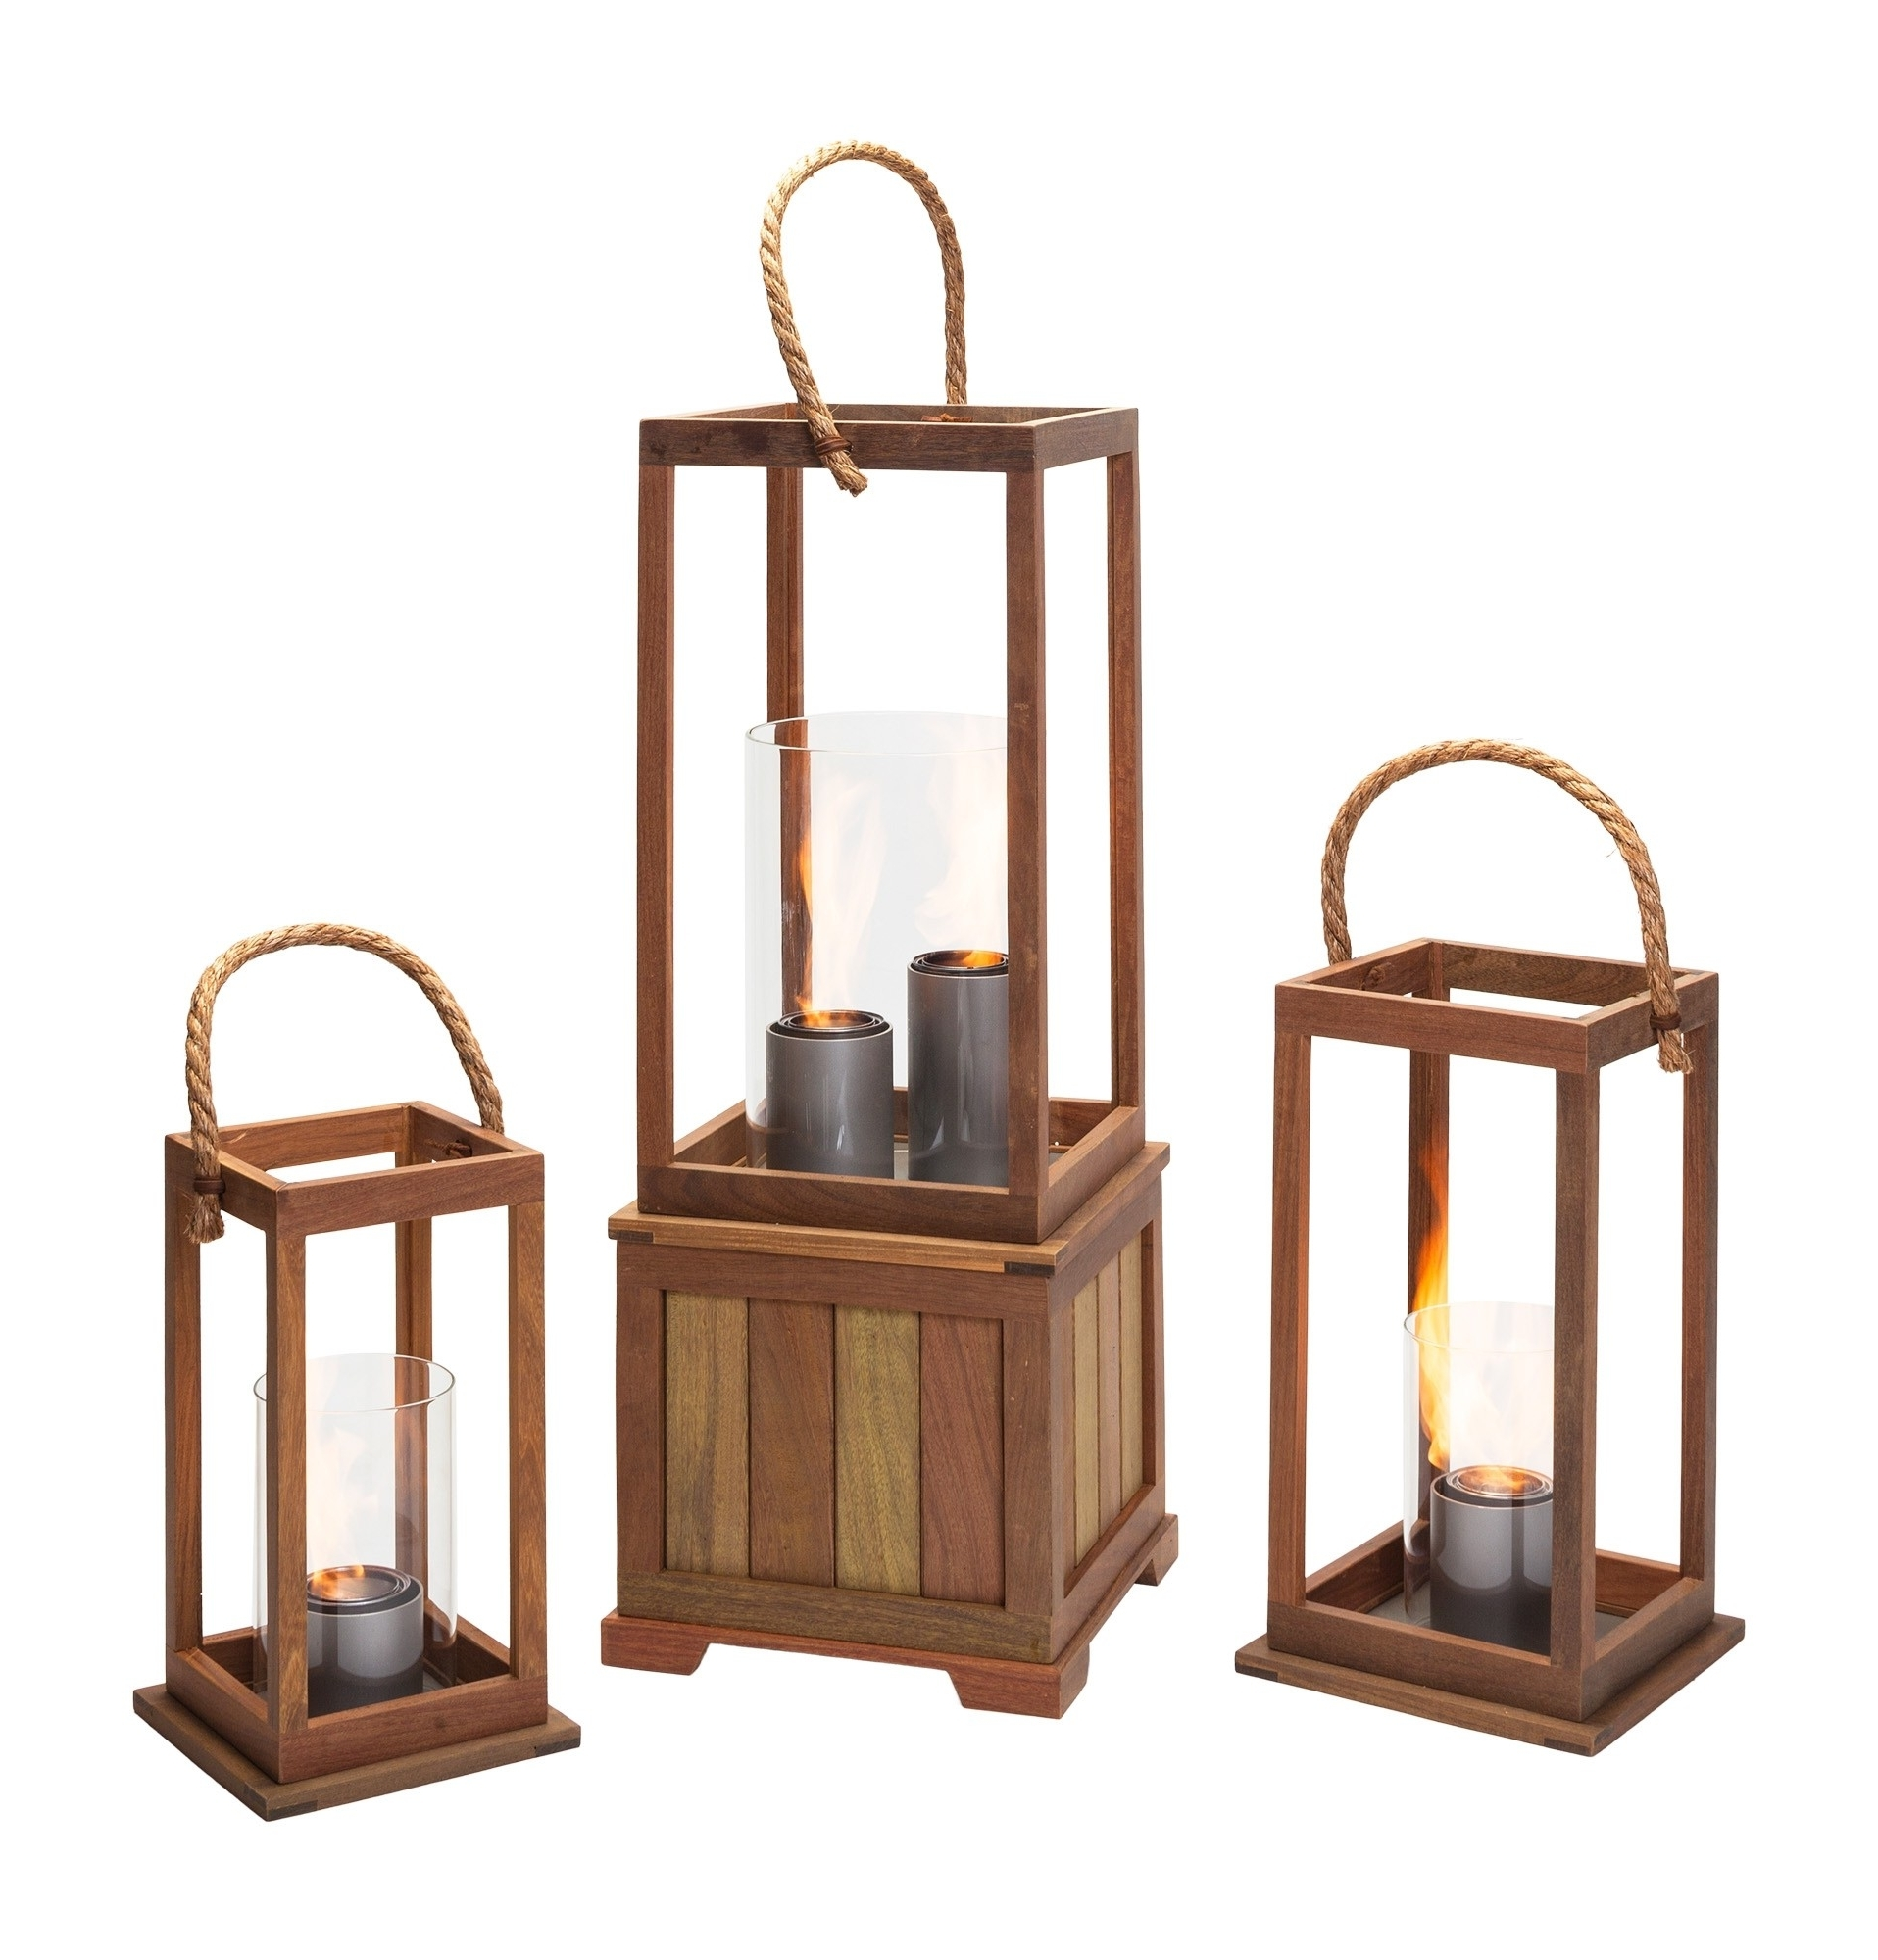 Xl Outdoor Lanterns For Recent Sonoma 17 Inch Outdoor Lantern In Ipe Woodnorthcape Fire (View 16 of 20)